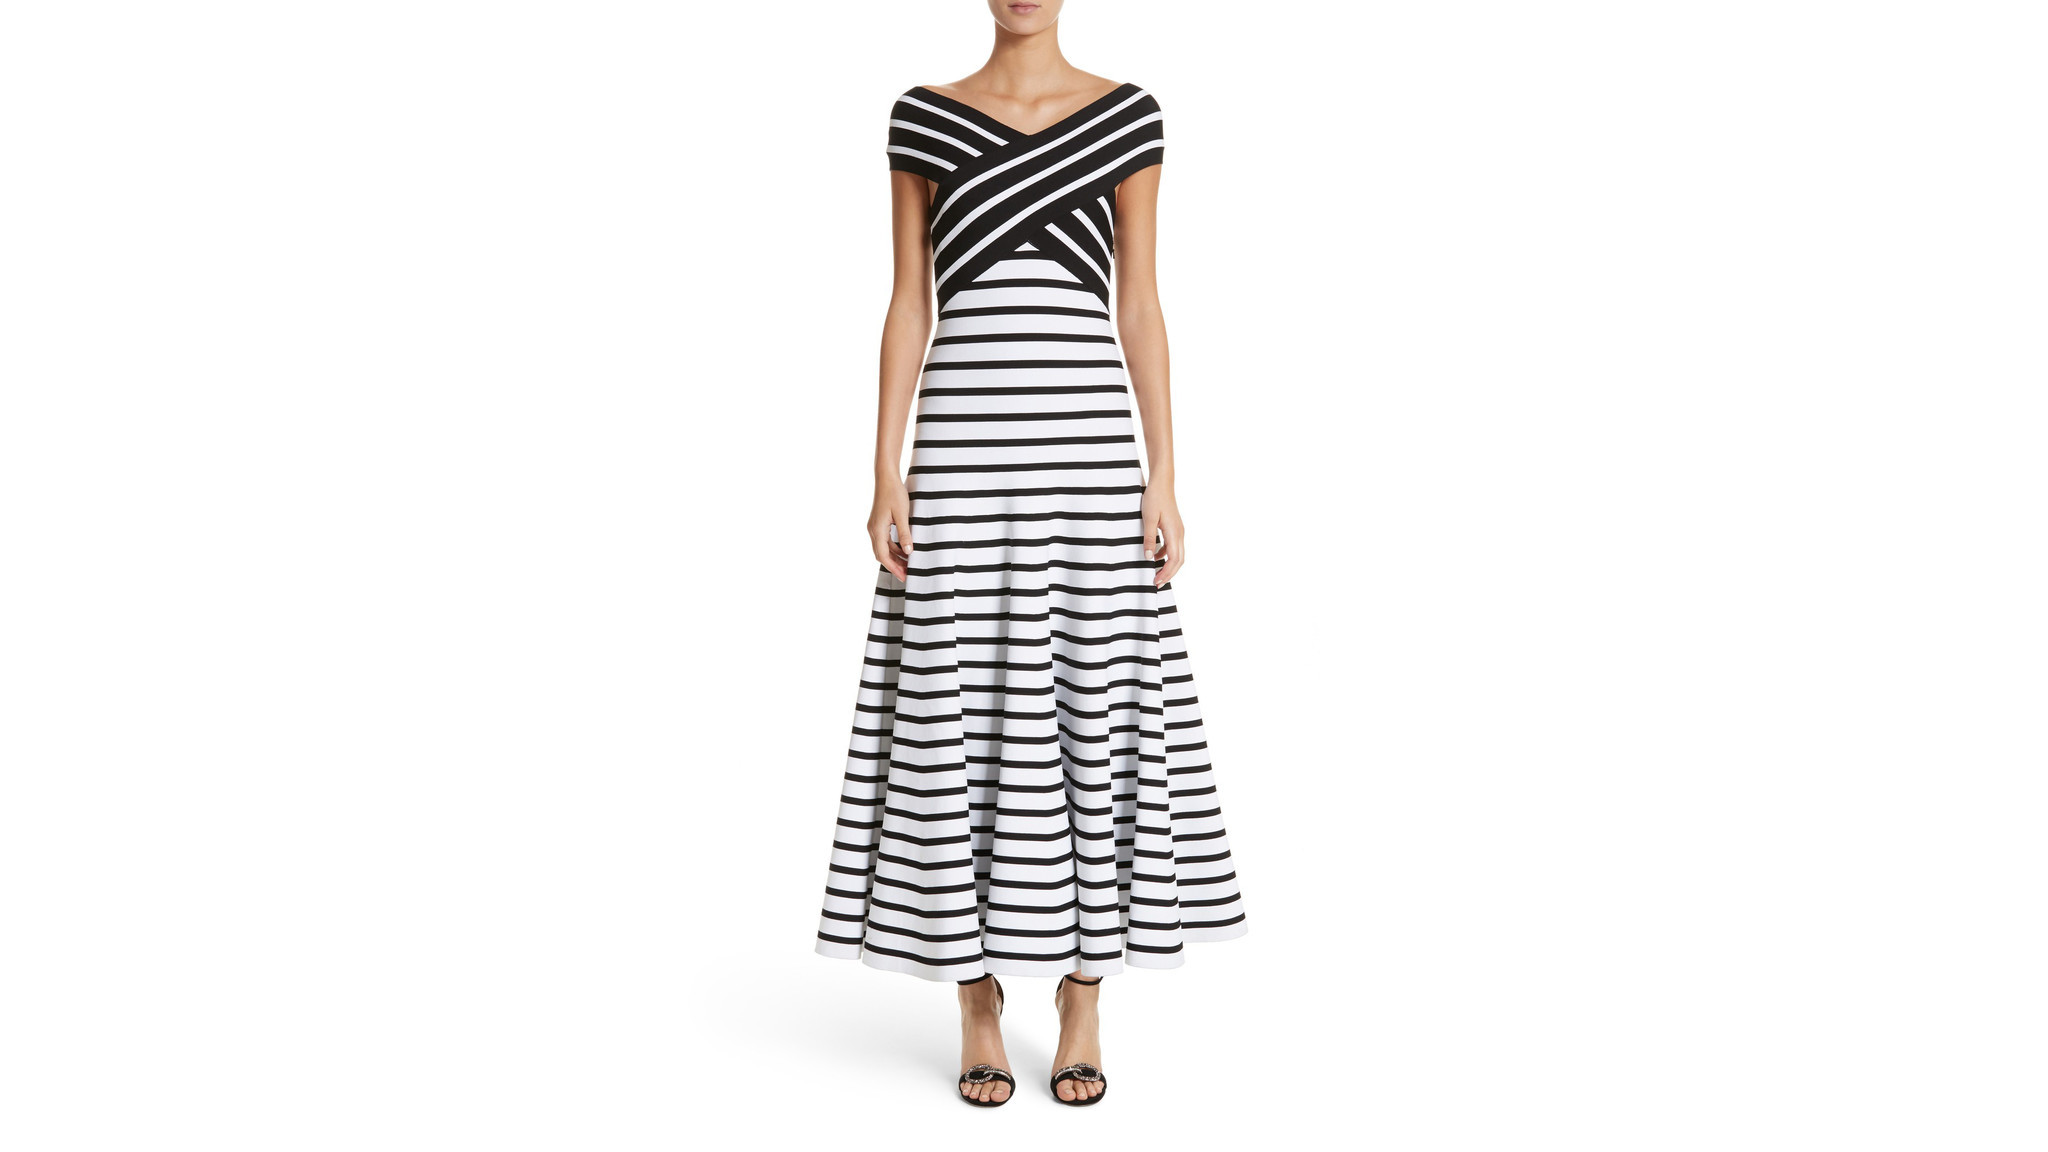 Designer: Caroline Herrera Photo Credit: Nordstrom Carolina Herrera's brash graphic black-and-whit